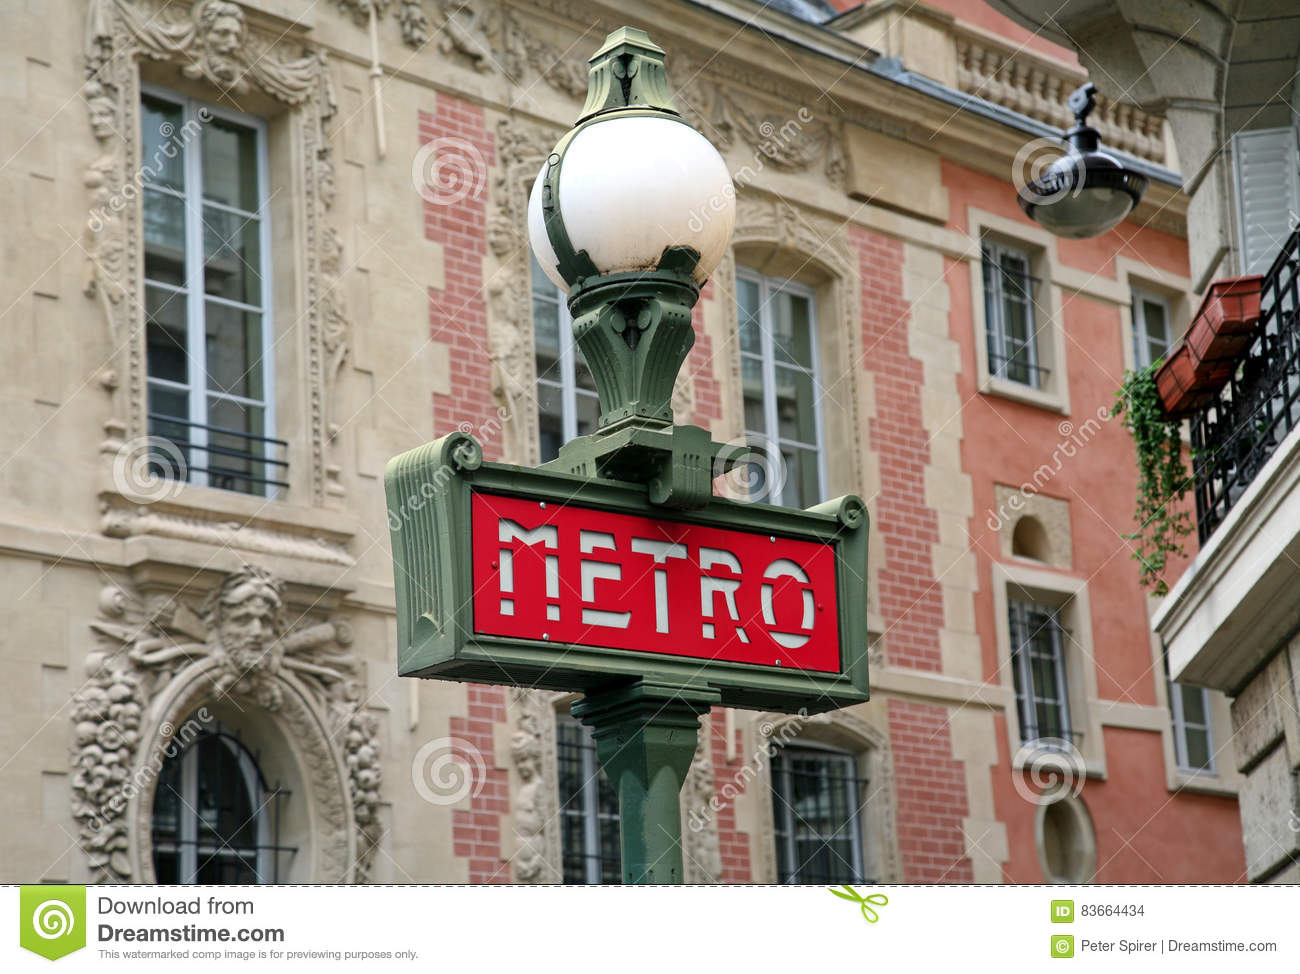 Paris An Iconic Art Deco Style Metrosign Editorial Stock